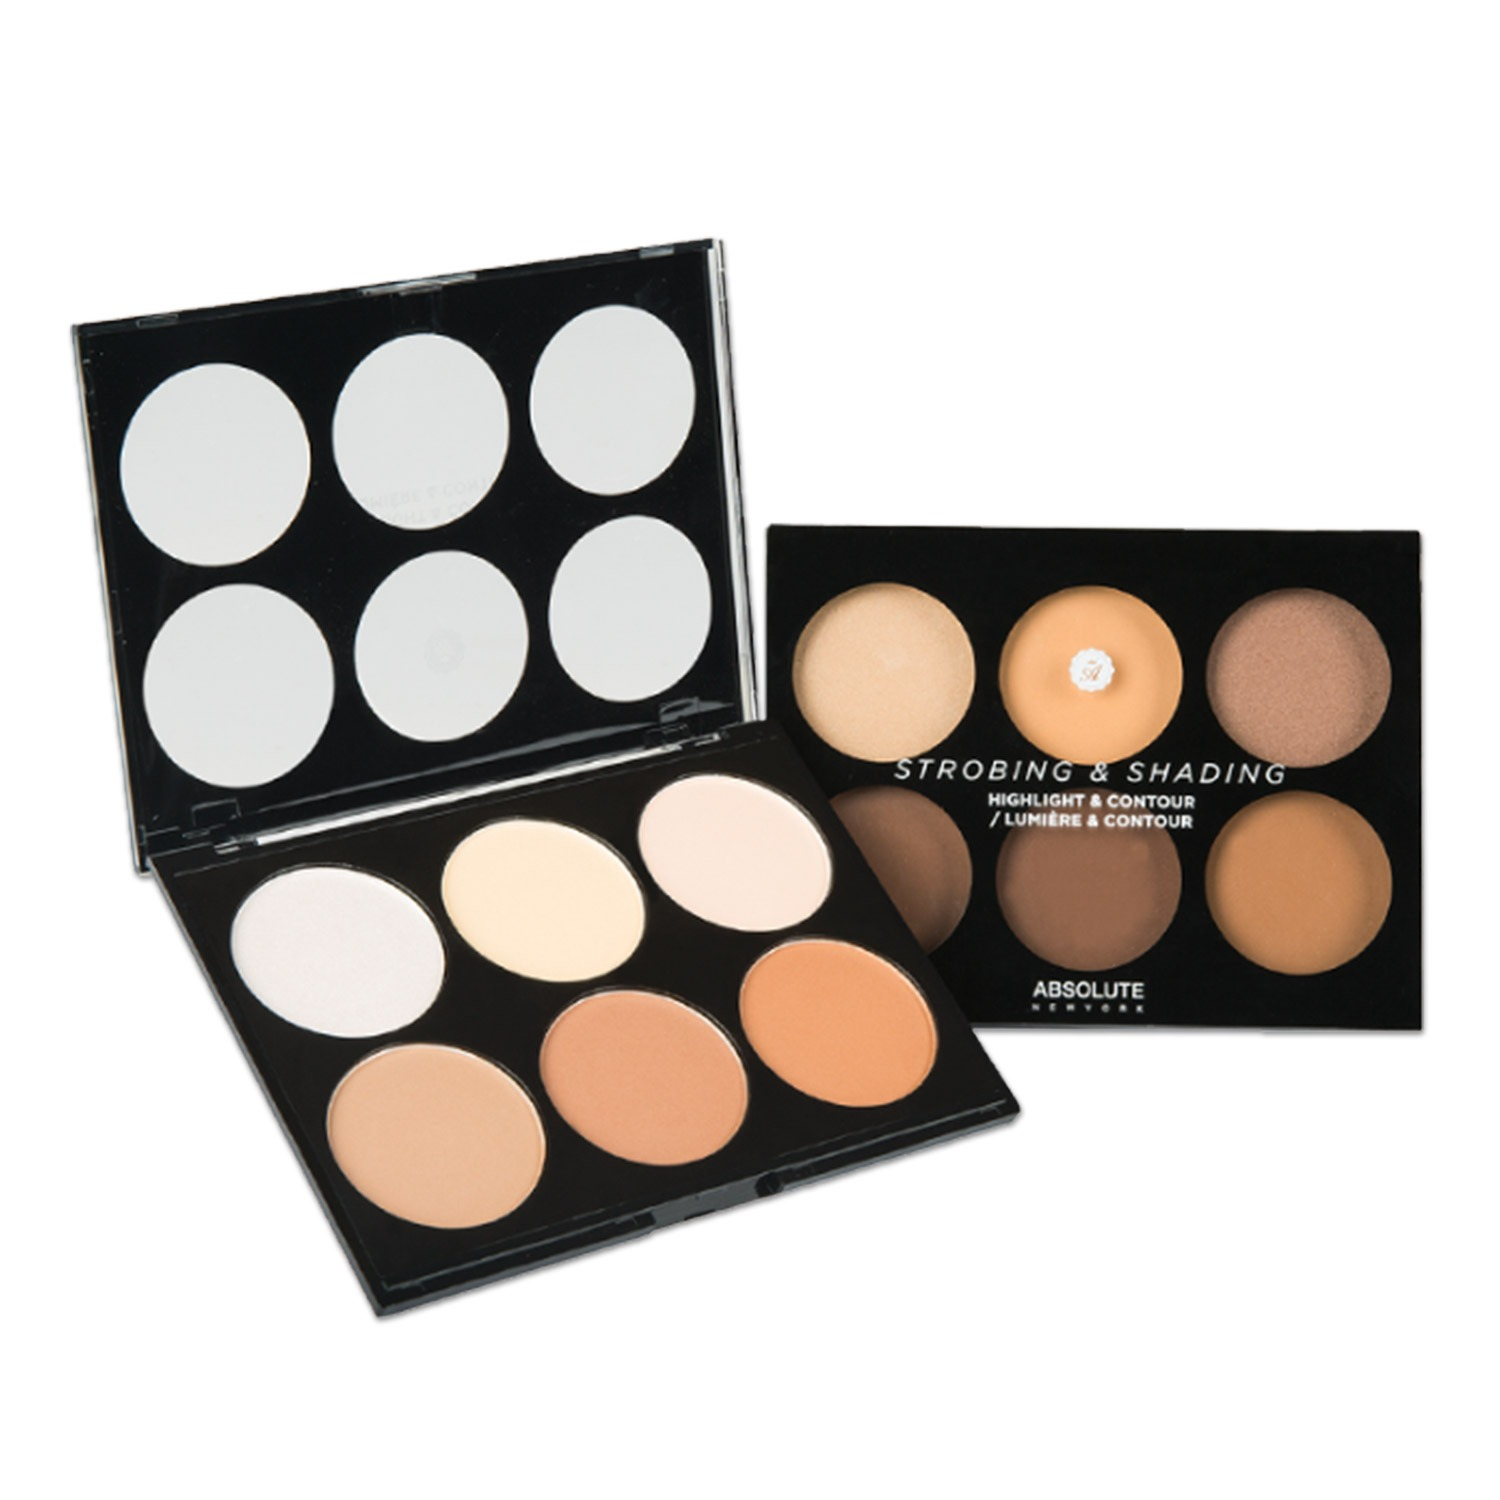 Absolute New York Strobing & Shading Palette